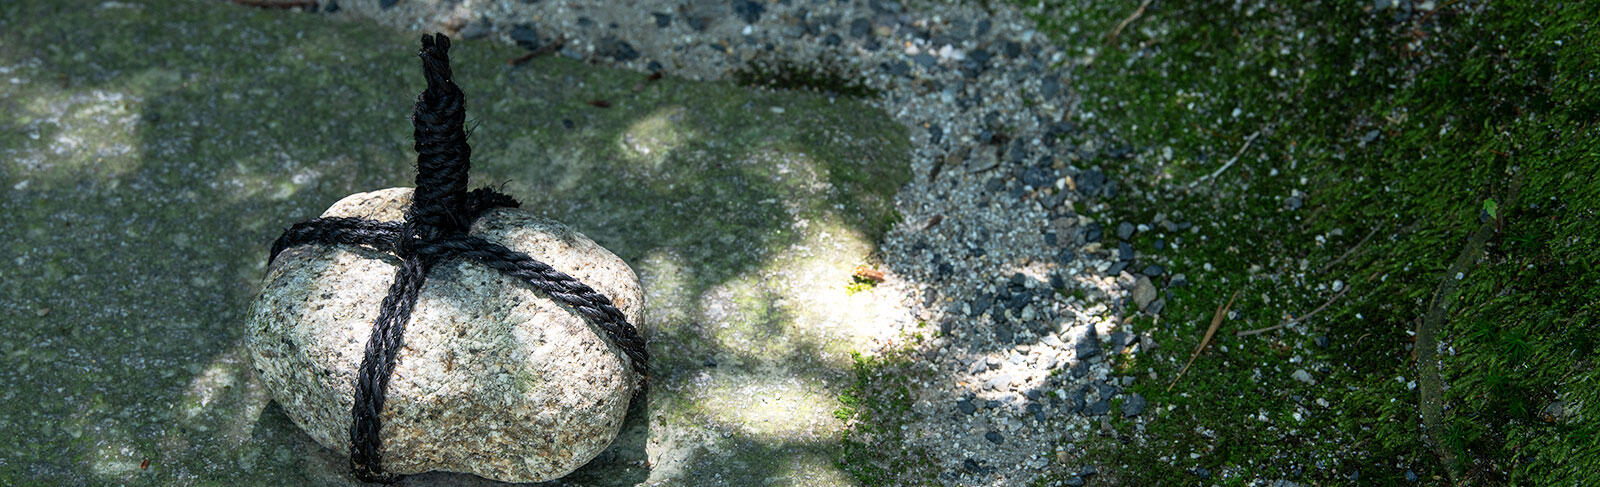 stopstoneinthegarden